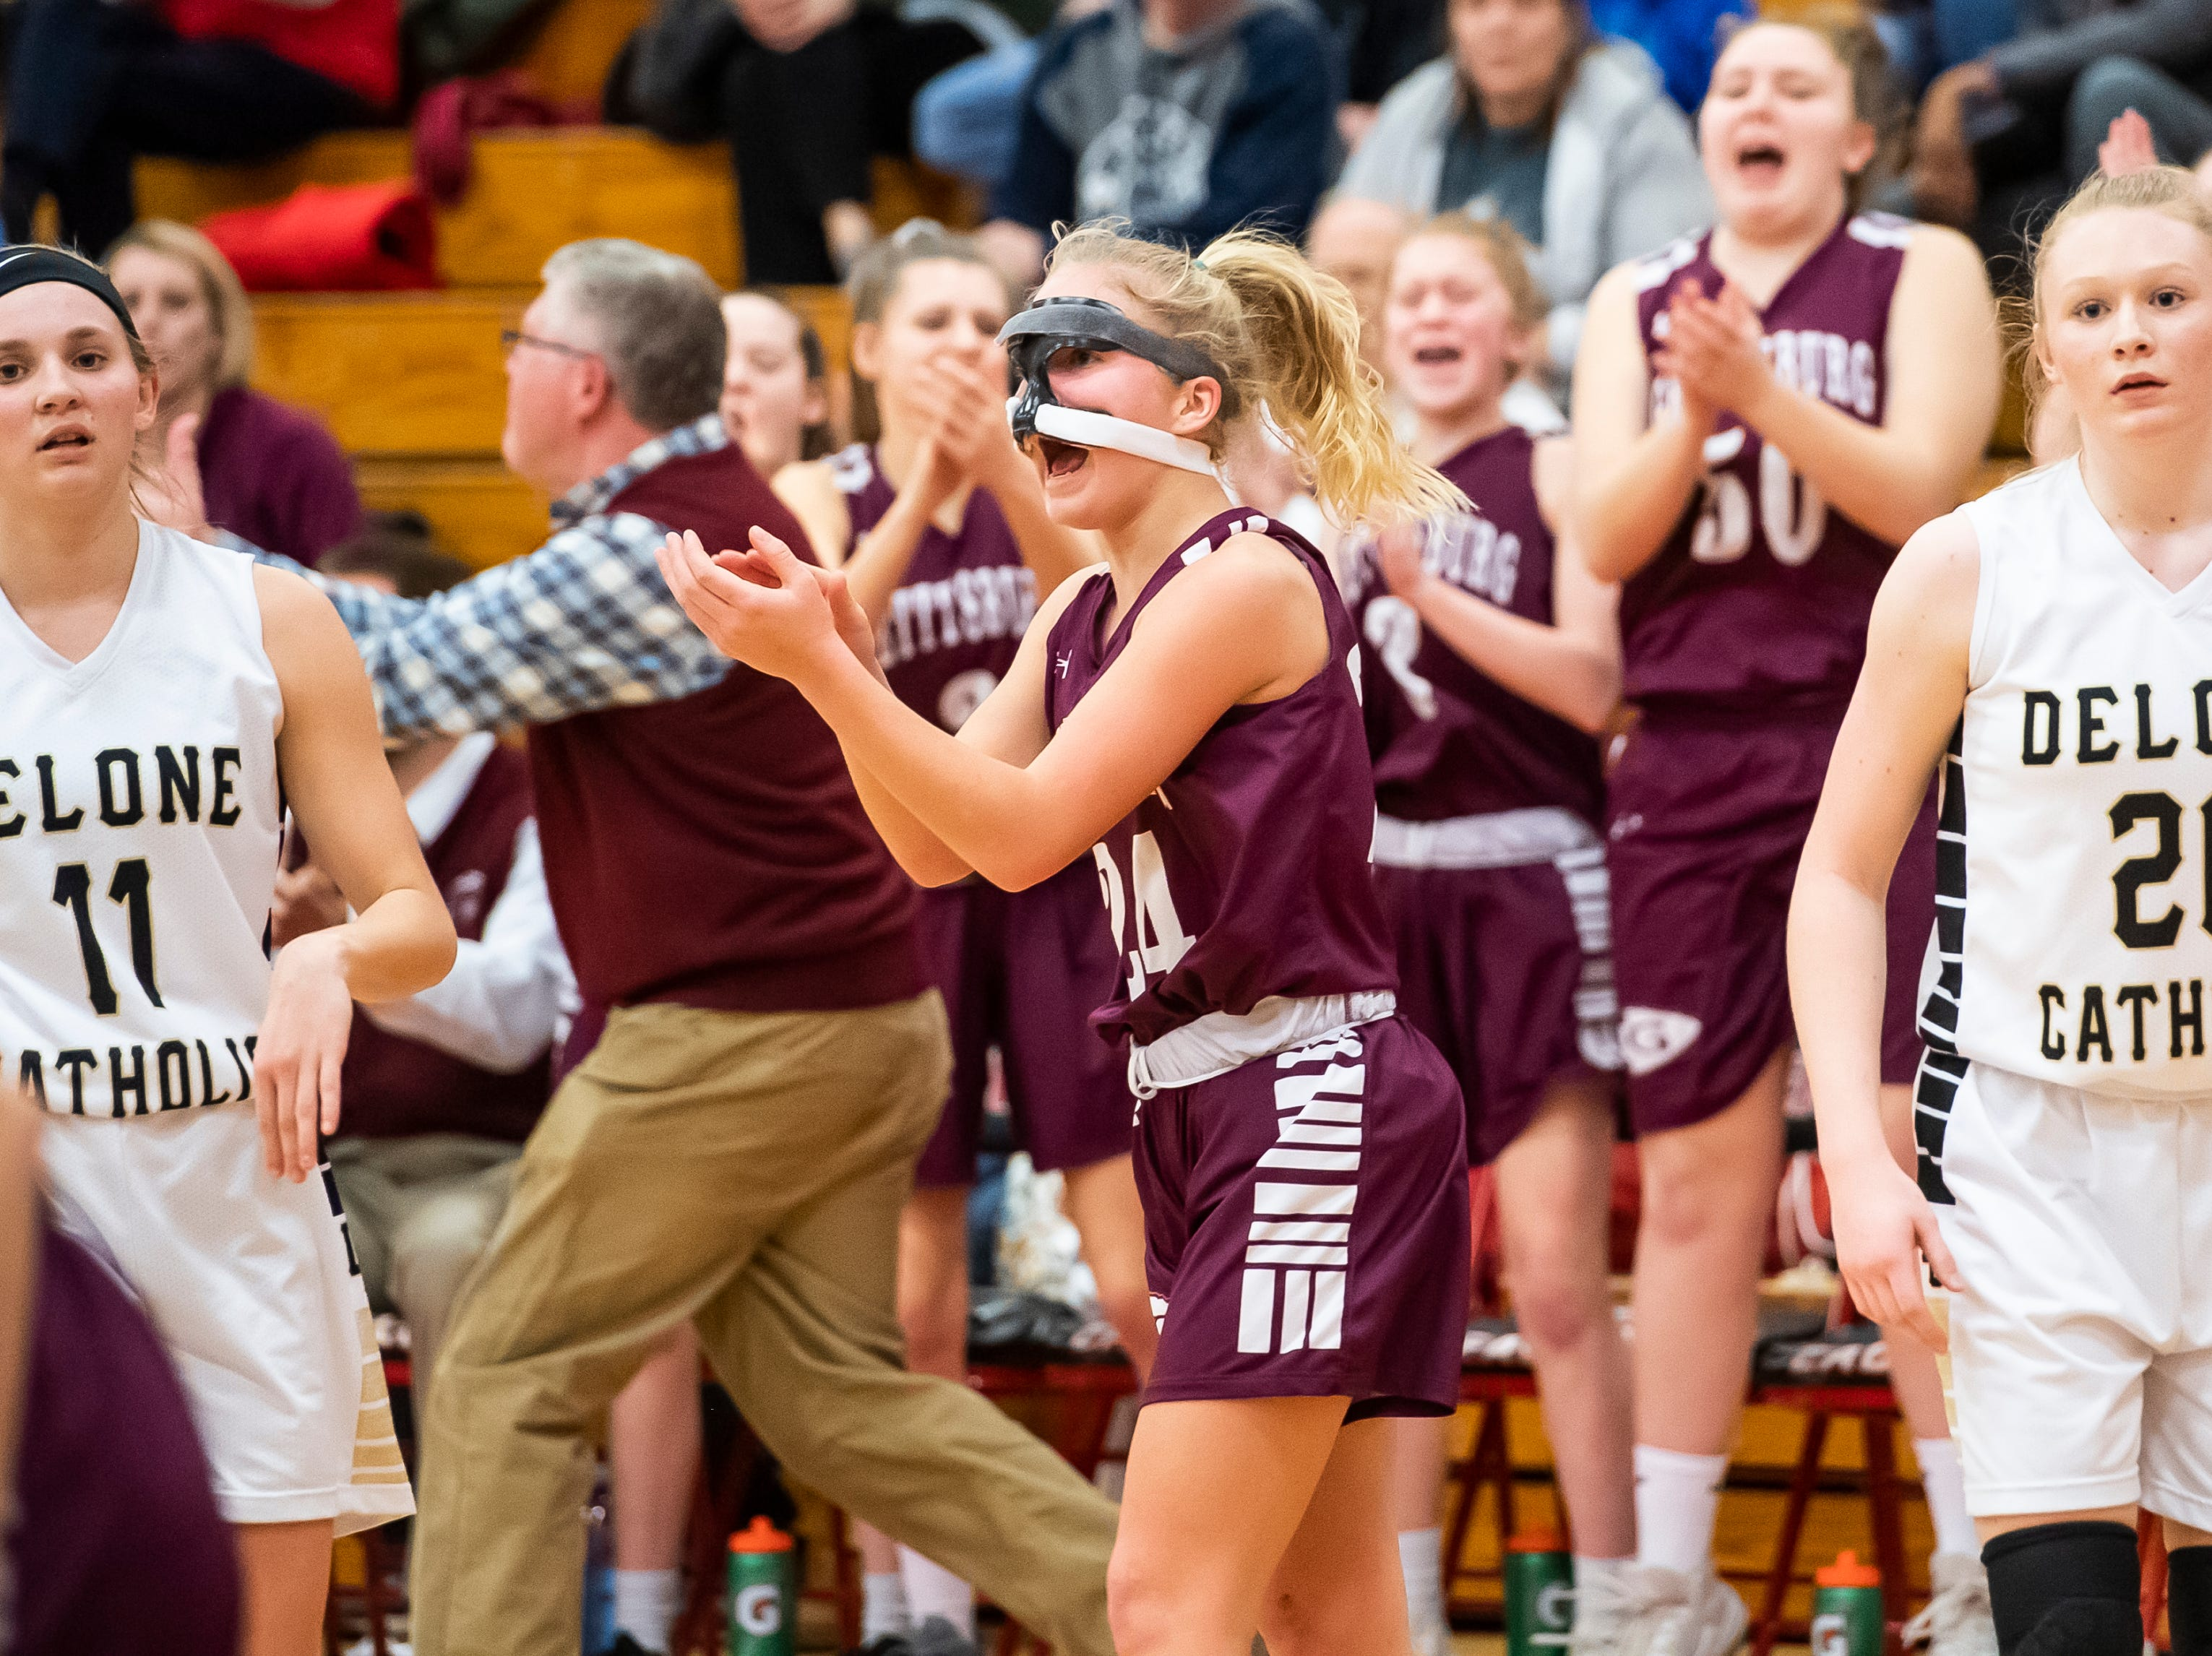 Gettysburg's Anne Bair, center, claps after the Warriors score a layup late in the fourth quarter of play against Delone Catholic in a YAIAA quarterfinal game at Dover High School Friday, February 8, 2019.